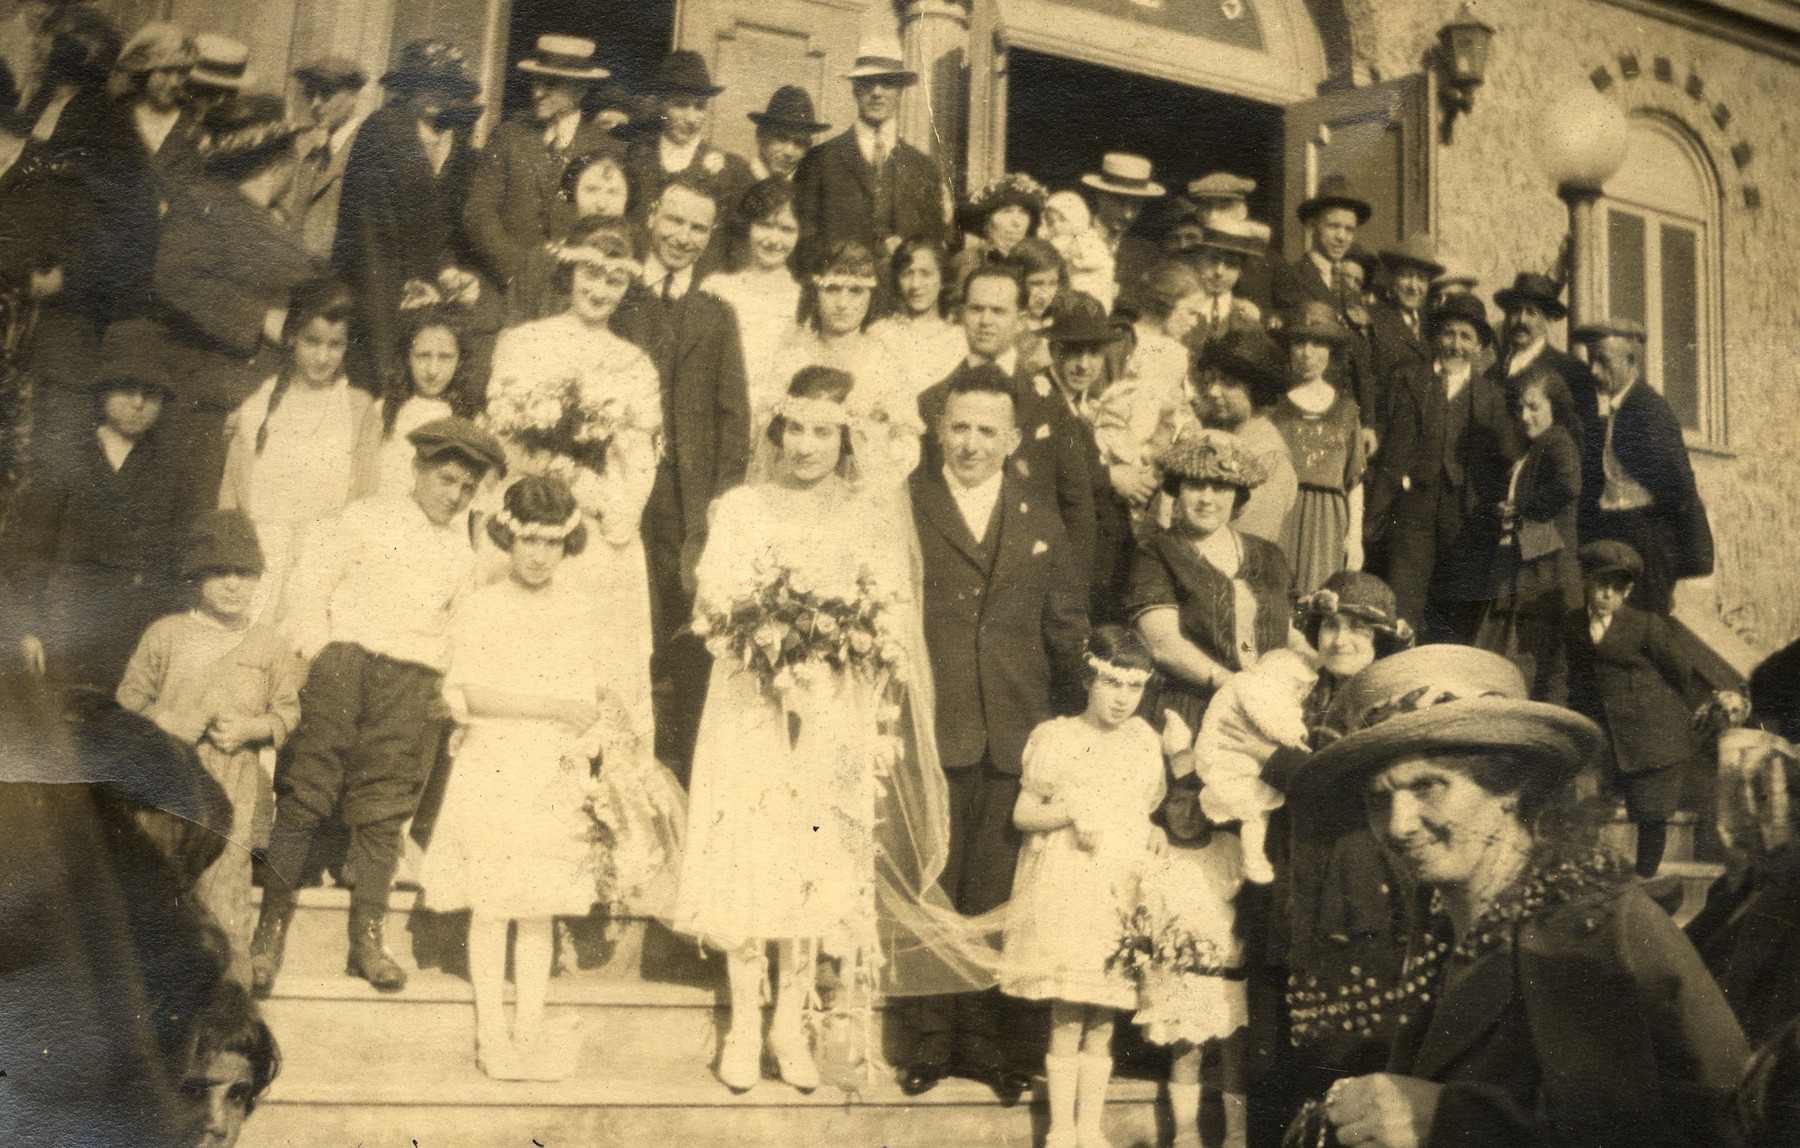 Joseph Benbeniste and Margaret Albohaire wedding photograph at Congregation Ezra Bessaroth, 15th Ave. and E. Fir Street, Seattle, WA